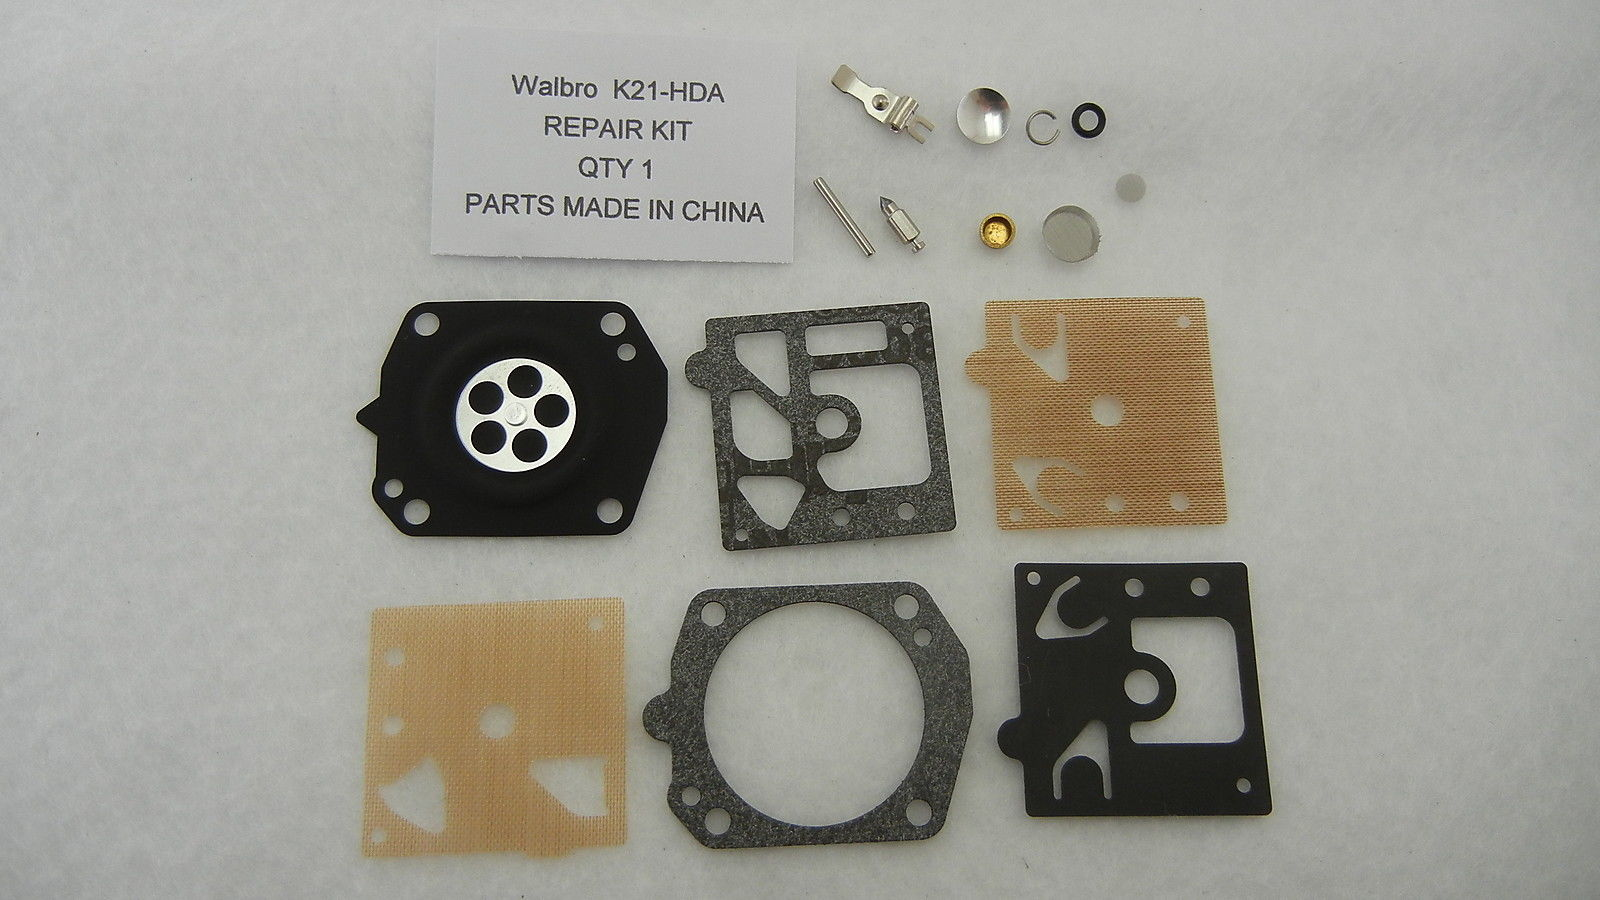 Walbro K21-HDA Carburetor Rebuild Kit